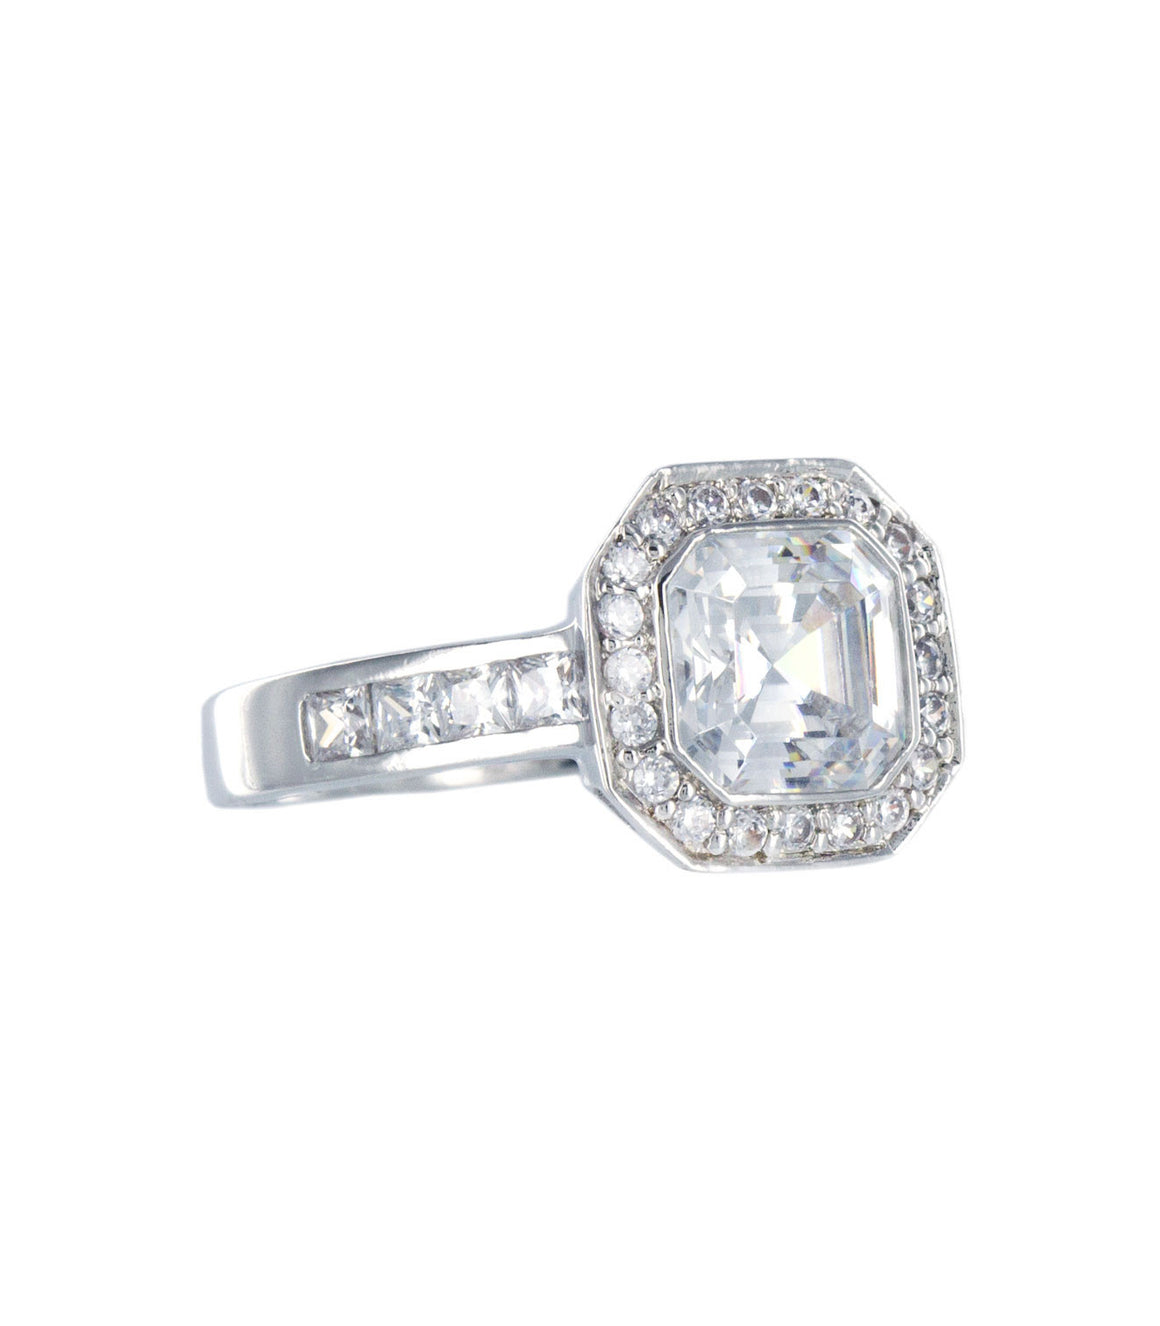 Classic cubic zirconia sterling silver ring.